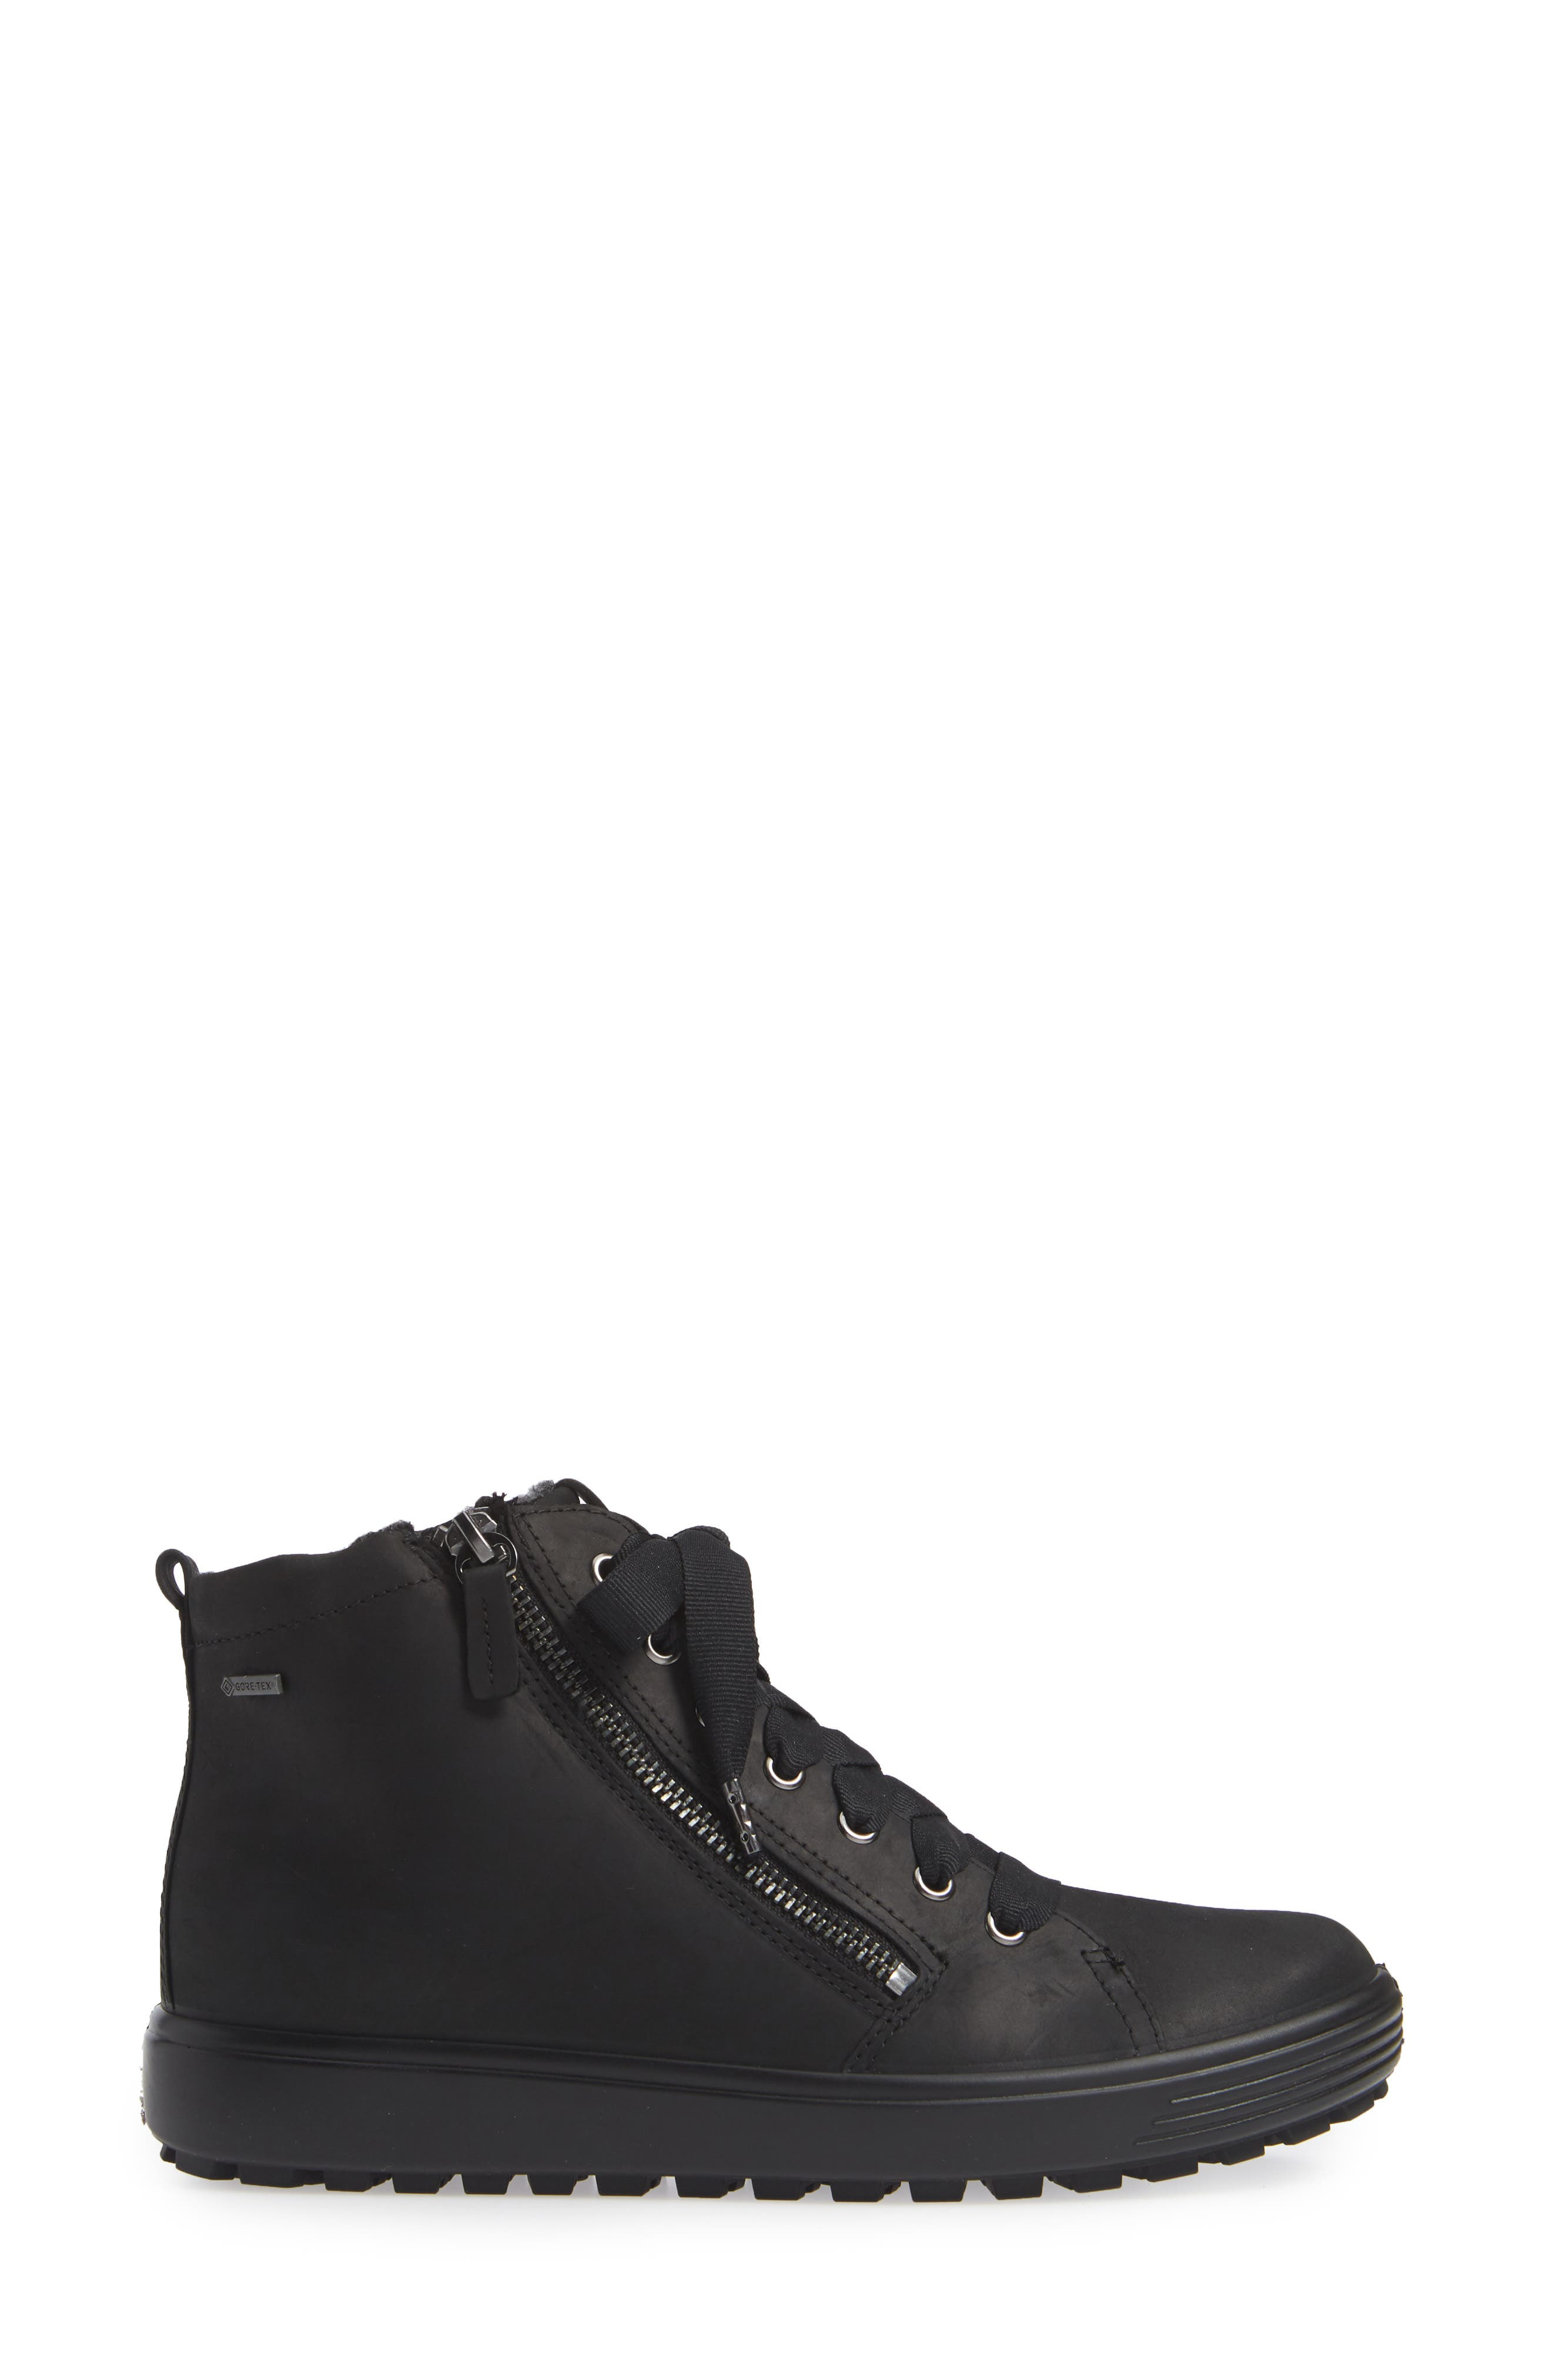 ECCO,                             Soft 7 Tred Gore-Tex<sup>®</sup> Waterproof Bootie,                             Alternate thumbnail 3, color,                             BLACK OIL NUBUCK LEATHER